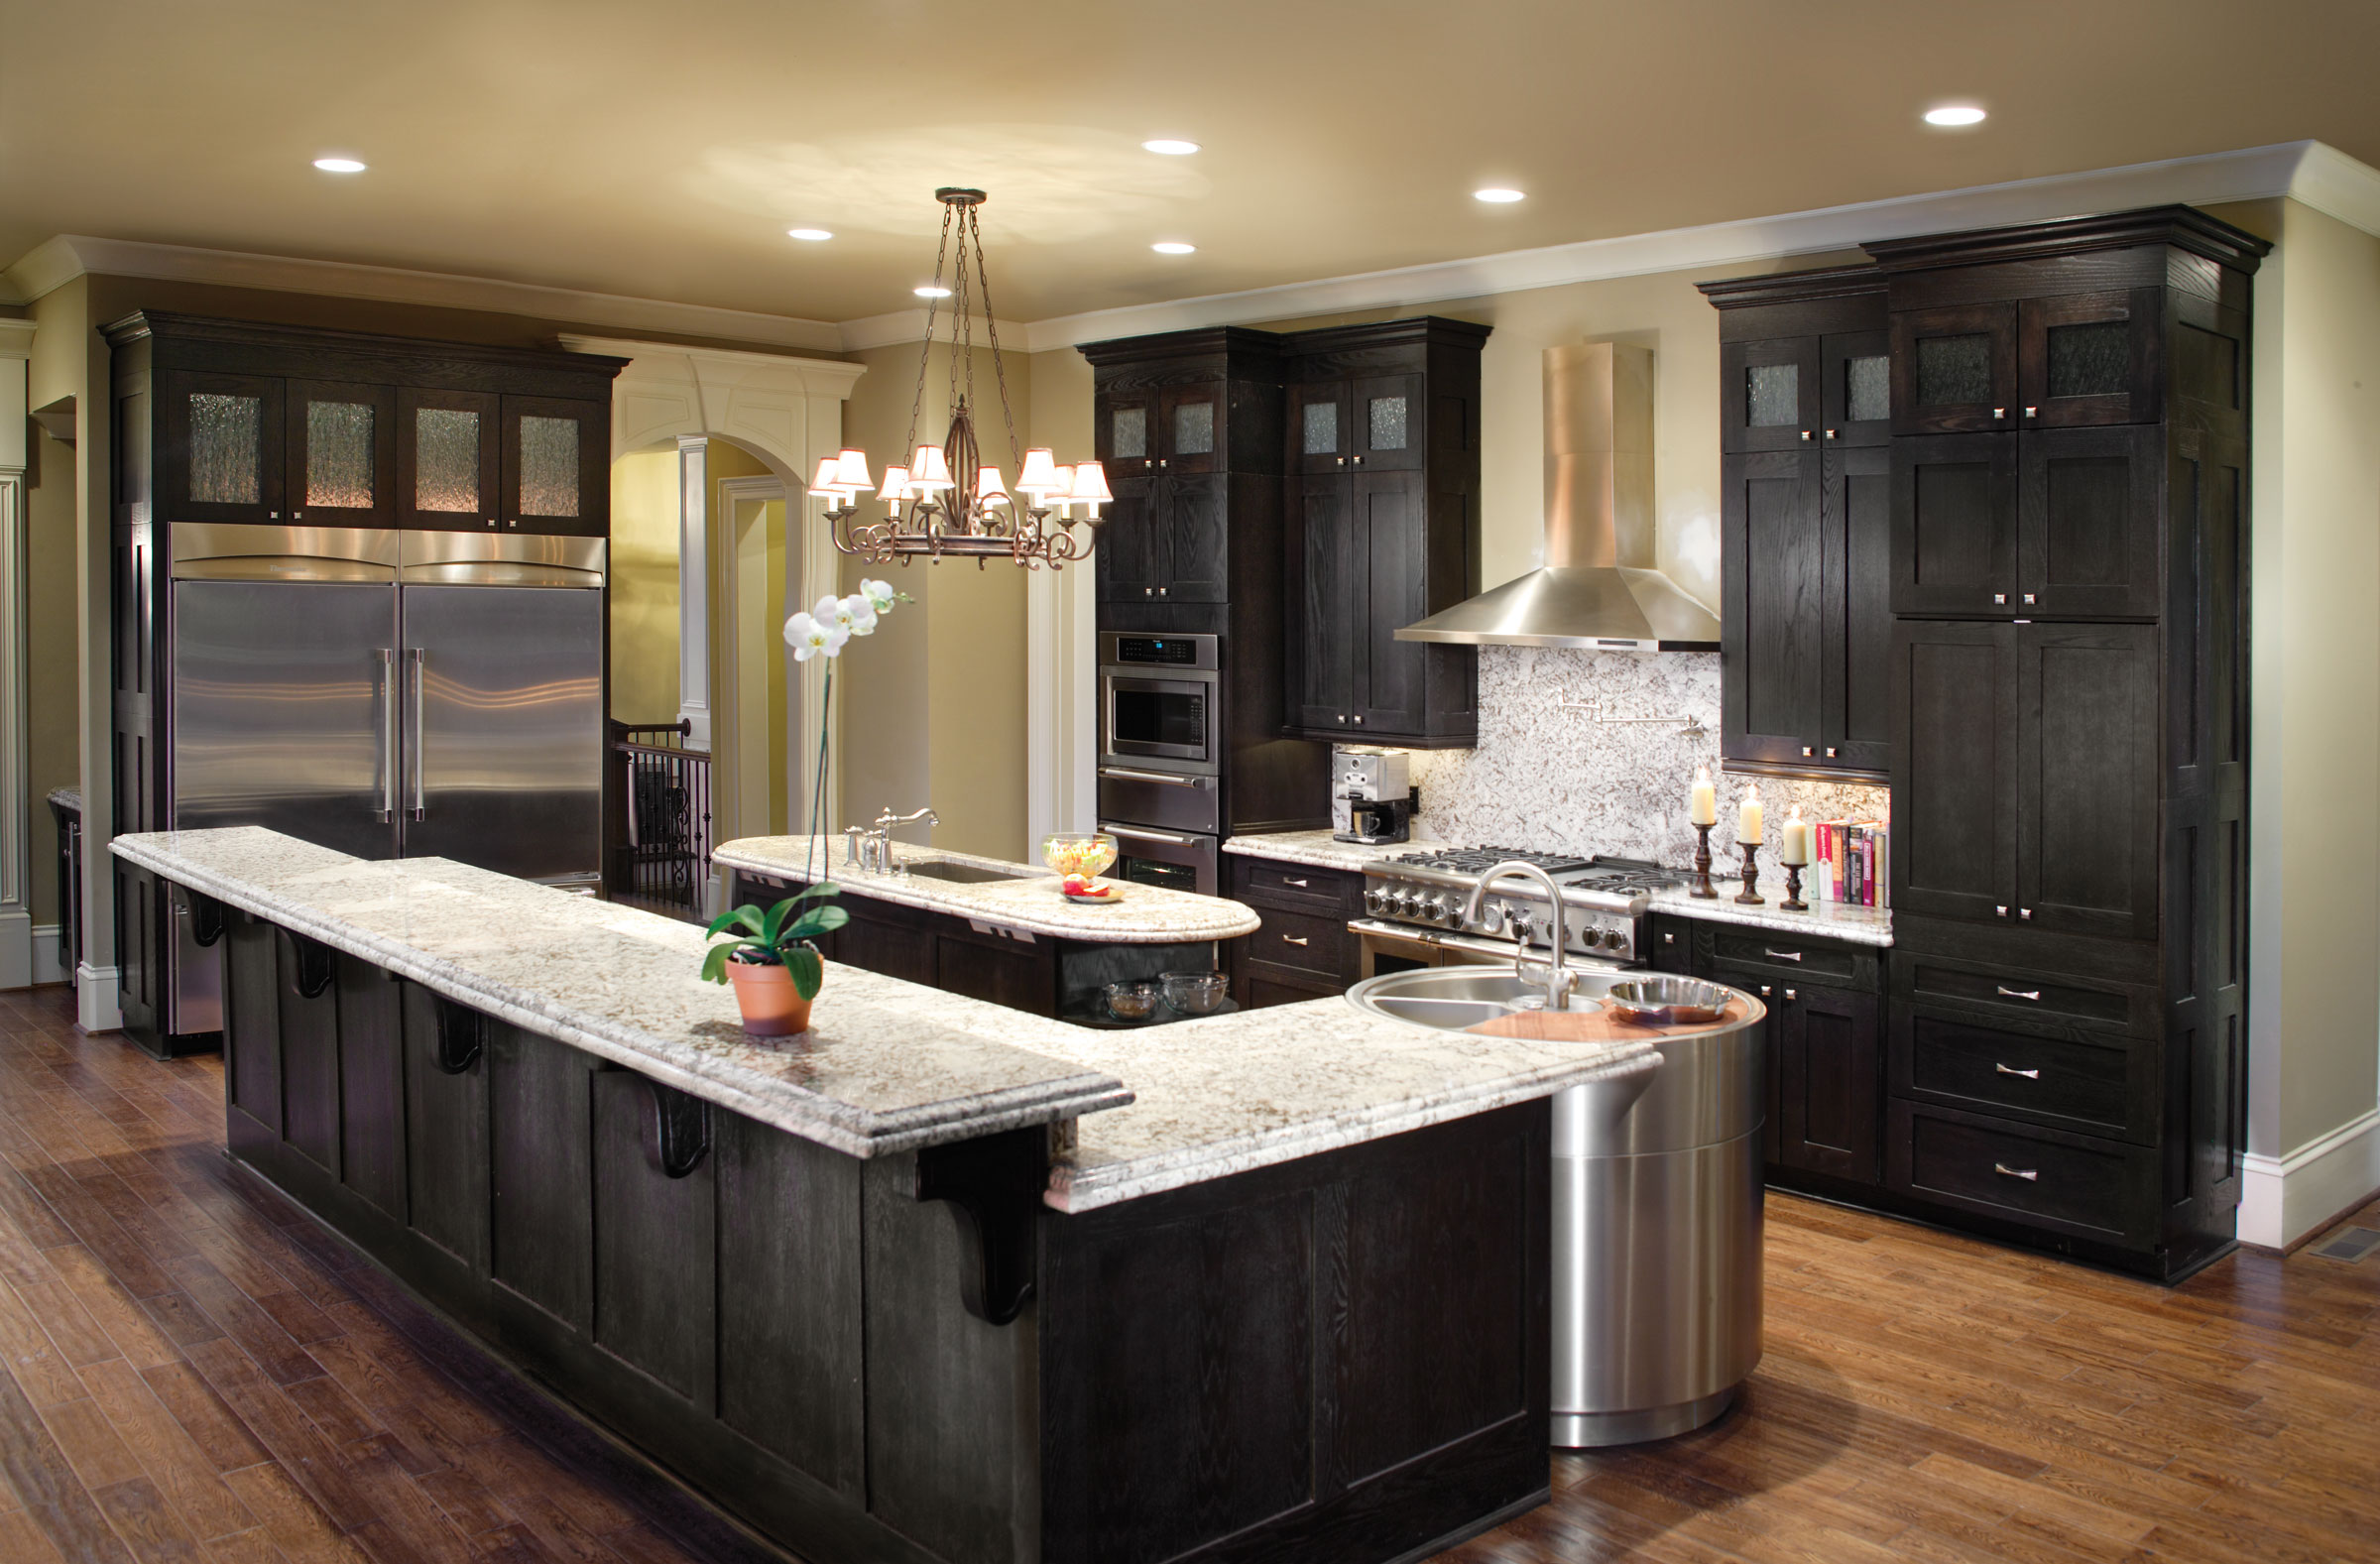 wonderful custom kitchen u0026 bathroom cabinets company in phoenix az cabinet maker. beautiful ideas. Home Design Ideas